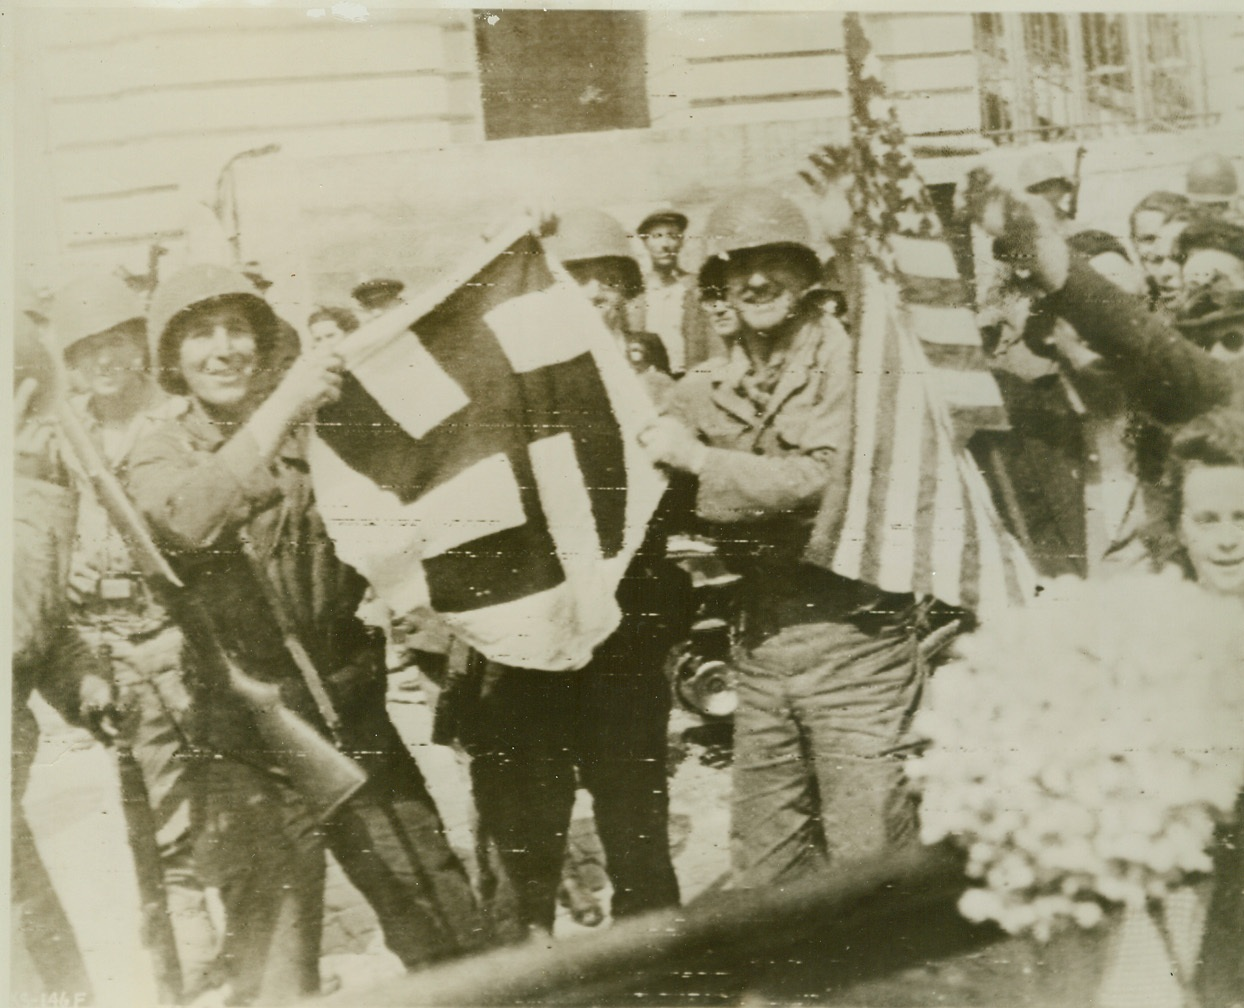 She'll Wave No More, 8/6/1944. Rennes, France—Smiling Yanks hold the flag that will fly no longer over liberated Rennes, capital of Brittany and largest French town to fall to the Allies to date. Beside the deposed Swastika, someone waves the Stars and Stripes, which, with the Tricolor, now waves over the city. Credit: Signal Corps radiotelephoto from ACME;